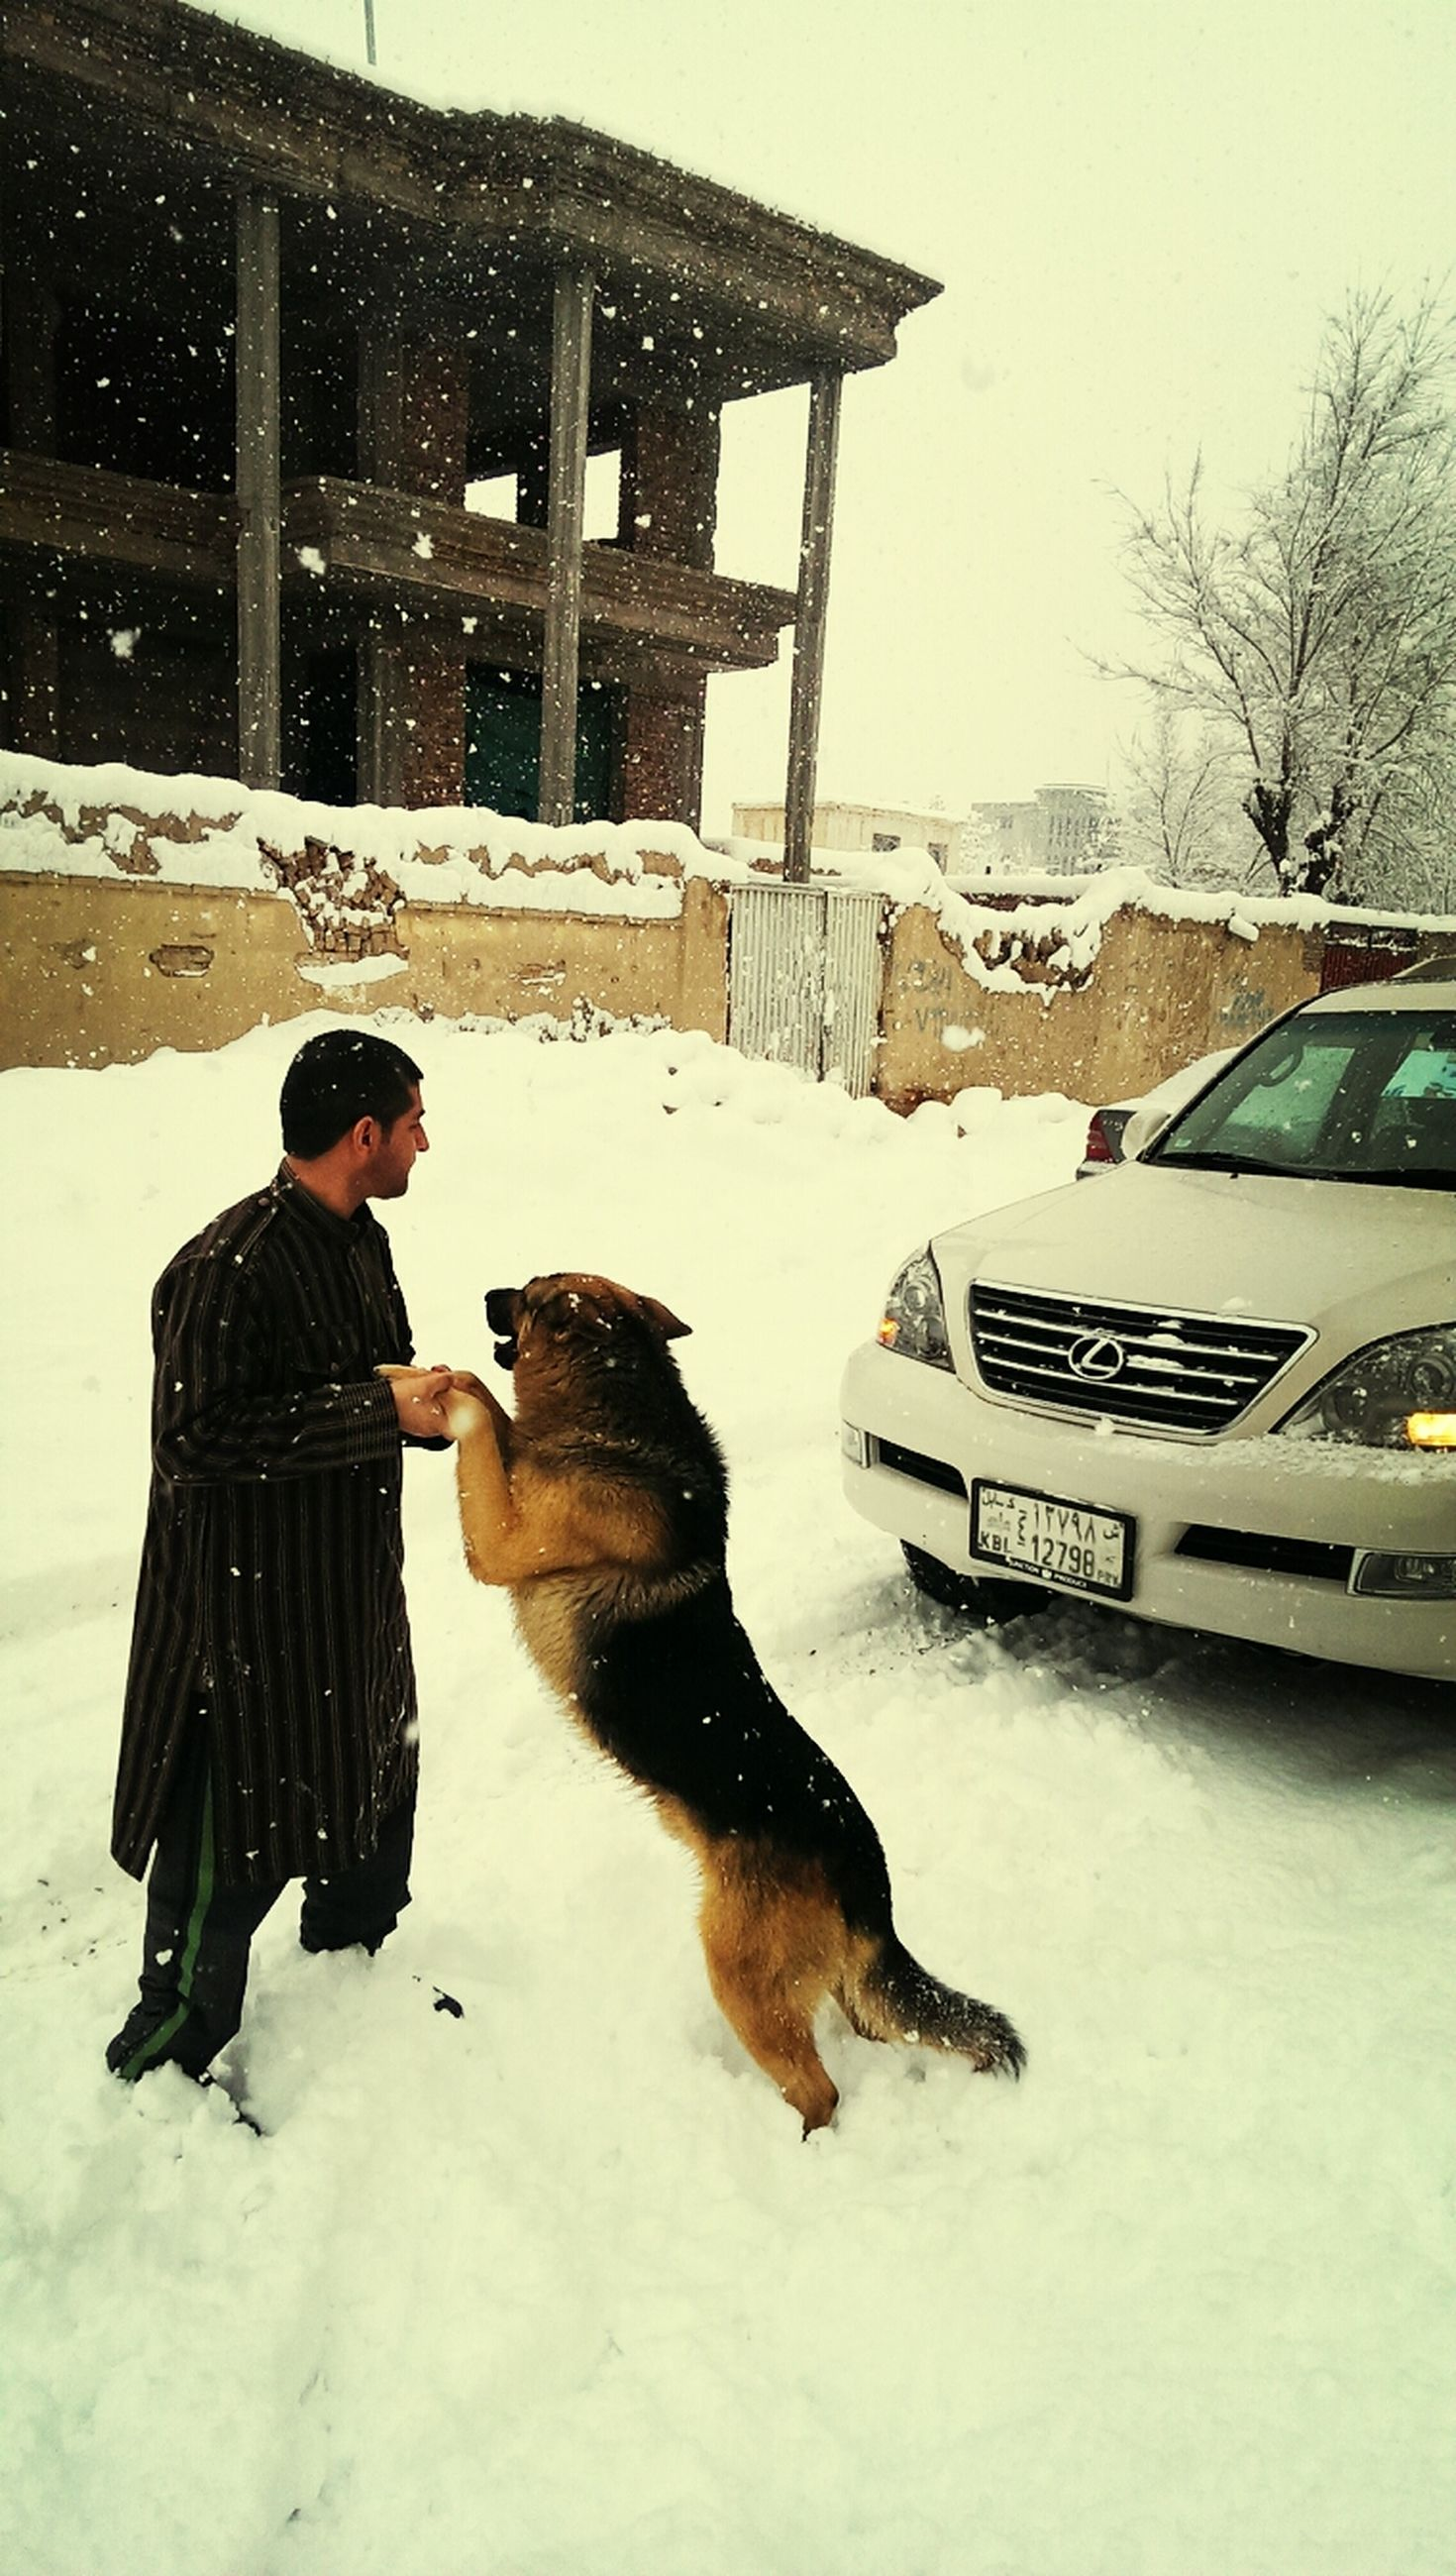 snow, winter, cold temperature, domestic animals, animal themes, architecture, building exterior, built structure, one animal, dog, full length, pets, season, lifestyles, mammal, standing, leisure activity, warm clothing